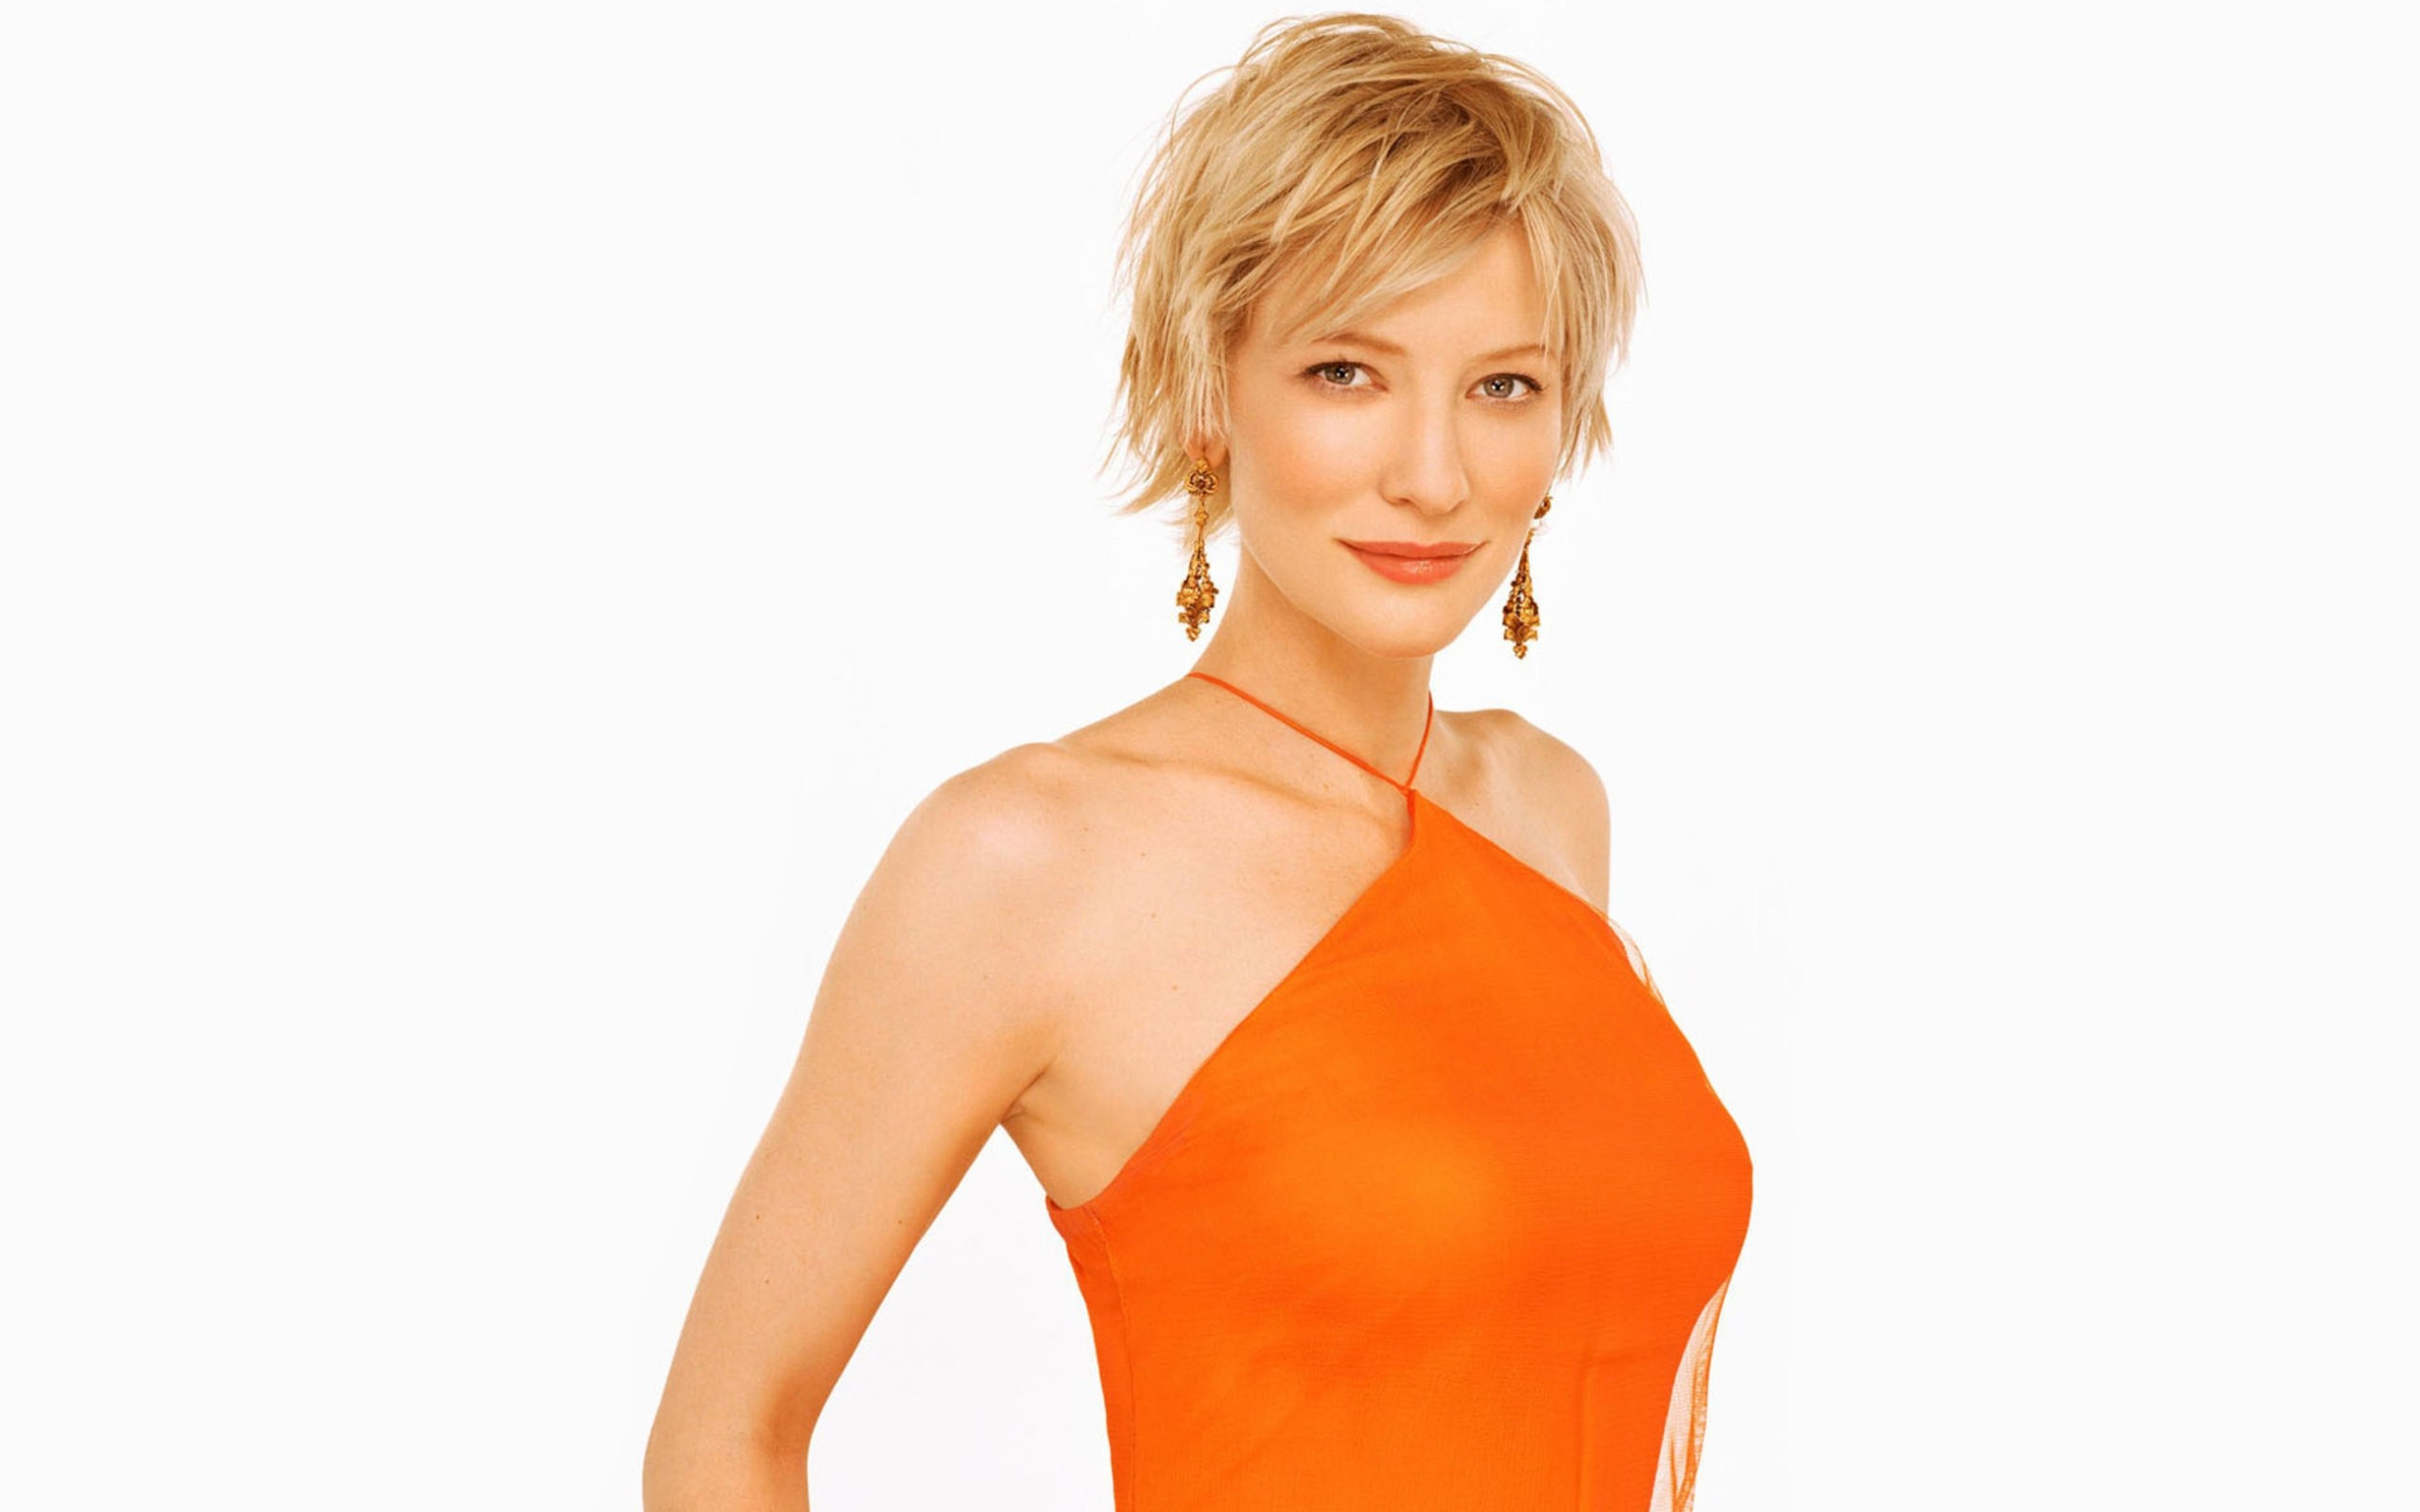 Cate-Blanchett-orange